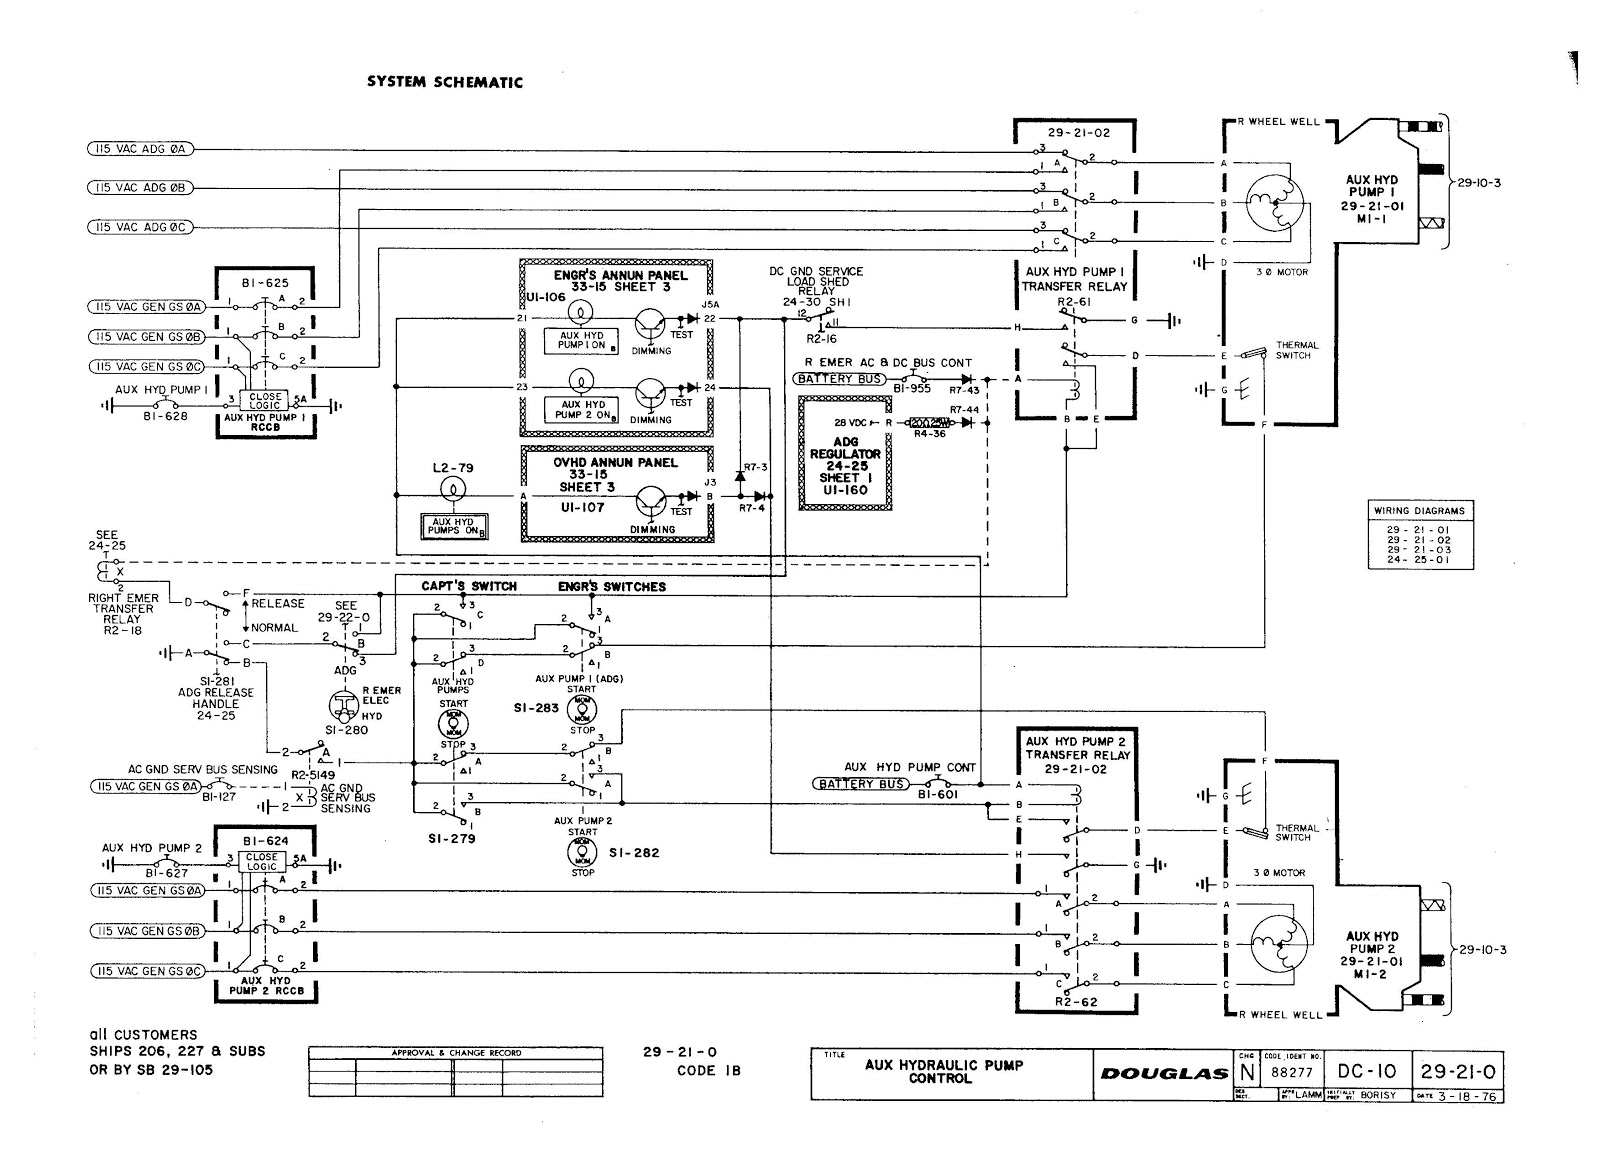 Avionics Wiring Diagram Wiring Diagram Hub